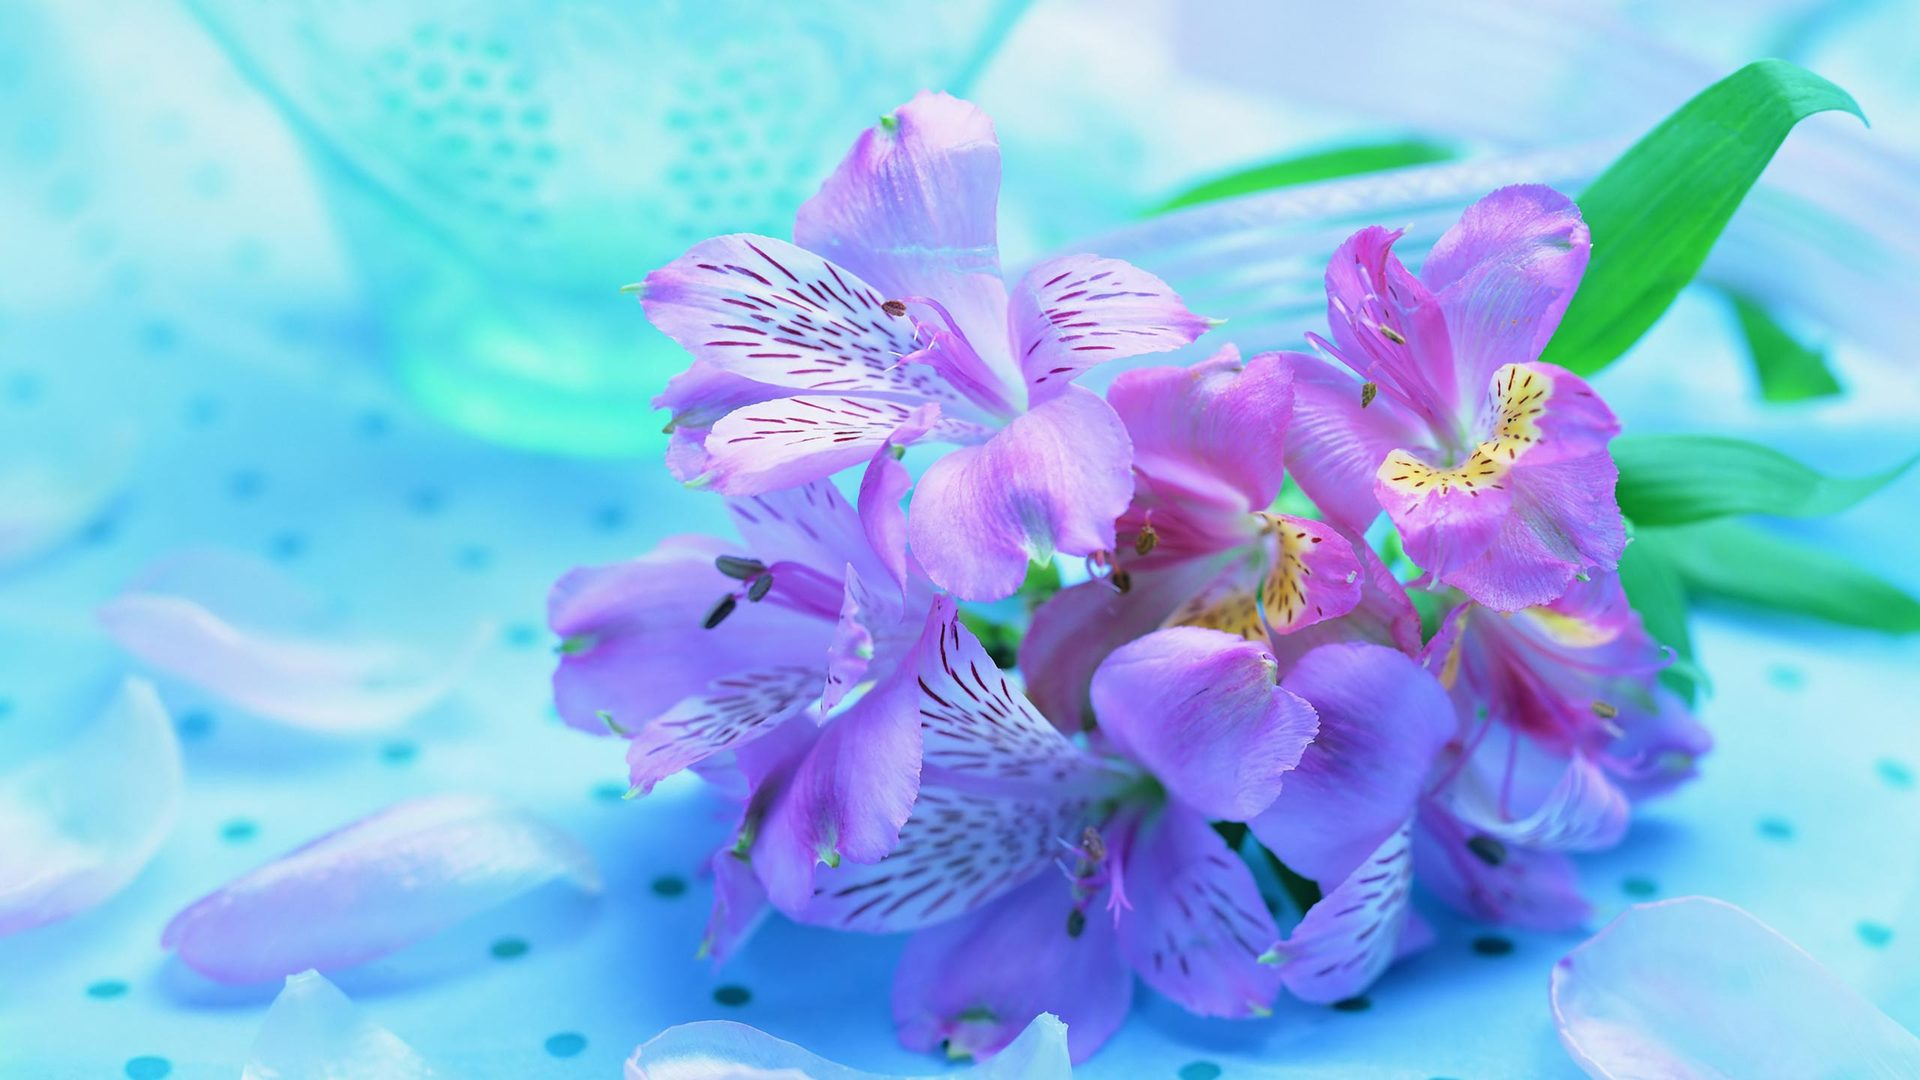 freesia-flower-wallpaper-1920x1080-1076 (Flower Wallpapers in 1920×1080